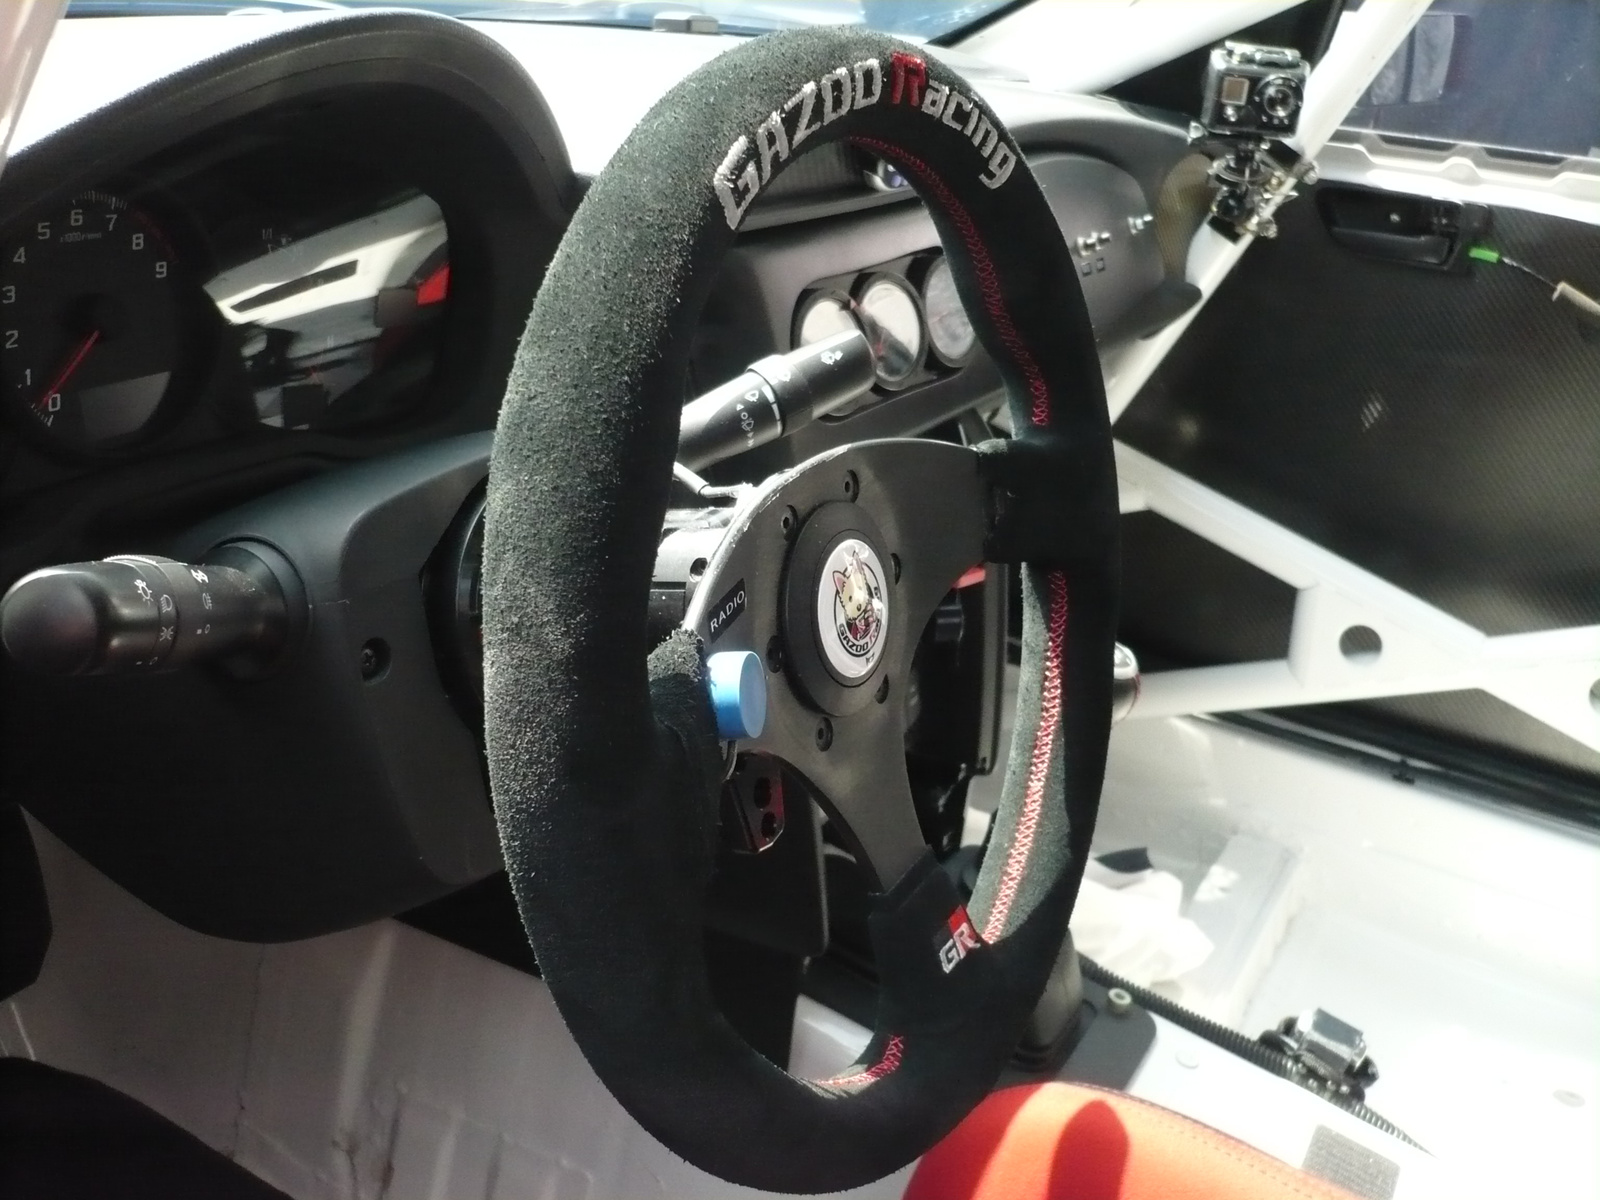 Toyota 86 Gazoo Racing N24 interior cockpit